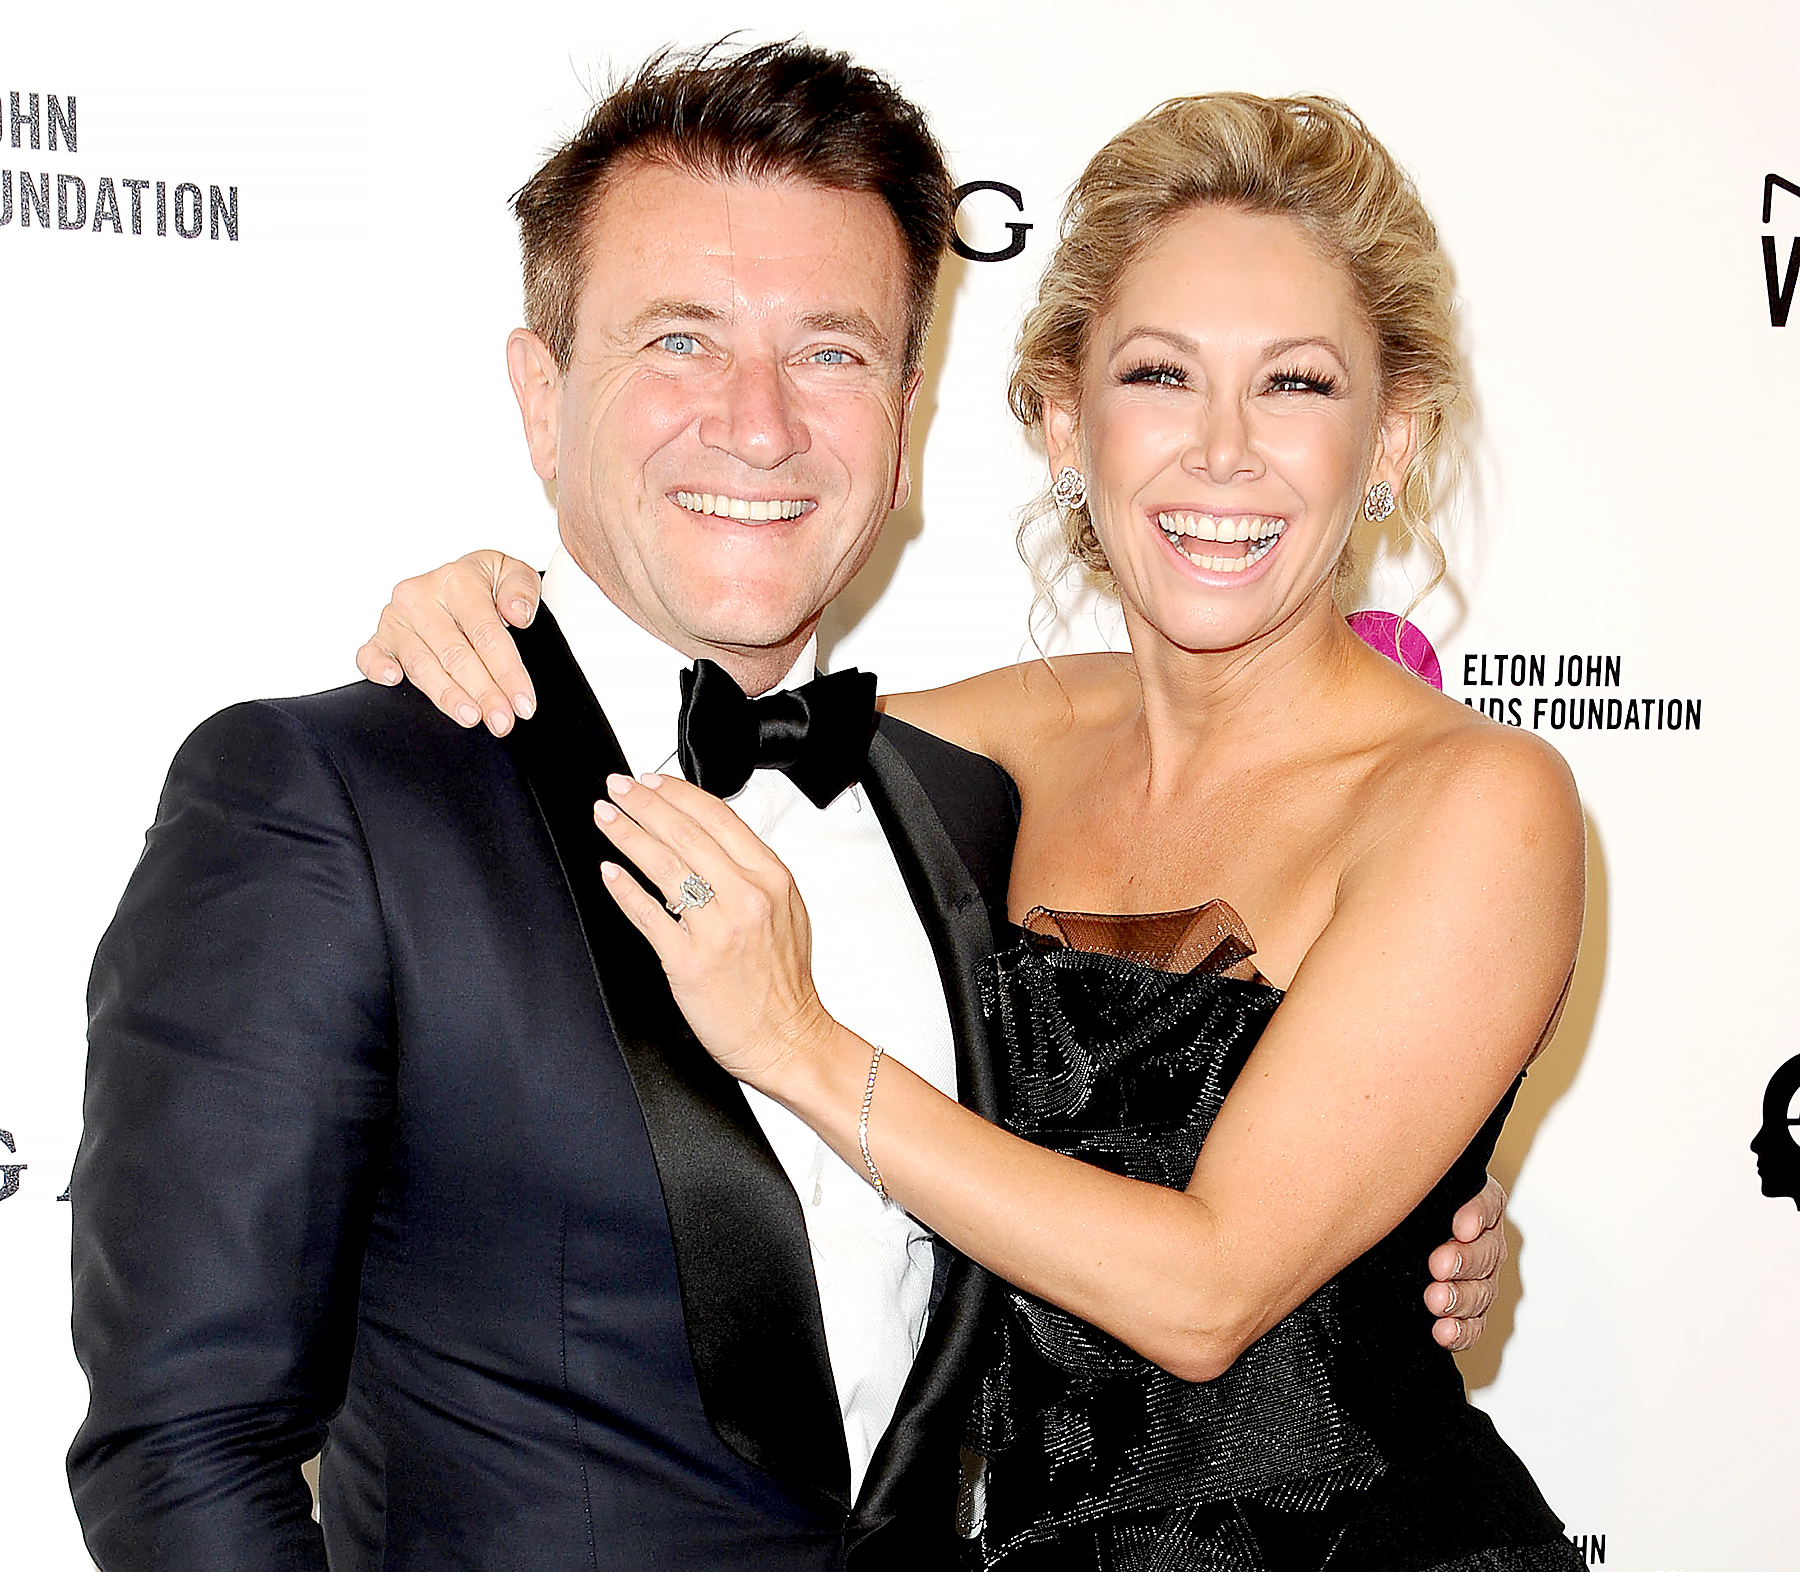 Kym Johnson, Robert Herjavec expecting first child together